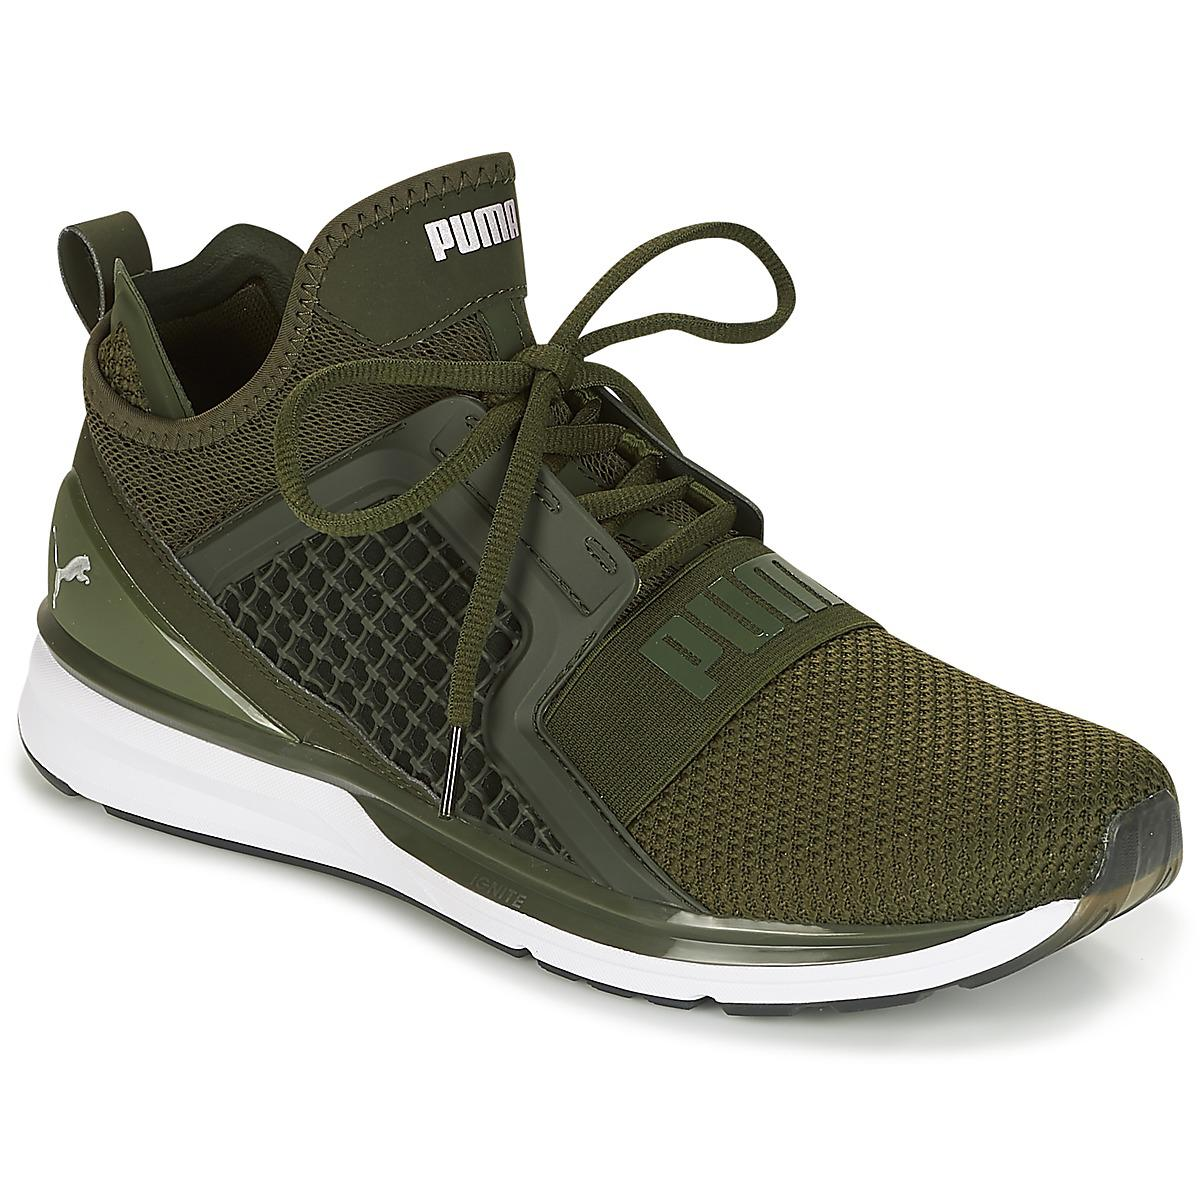 a3d92a0090a Puma ignite limitless weave running trainers in green for men lyst jpg  1200x1200 Ignite pumas green